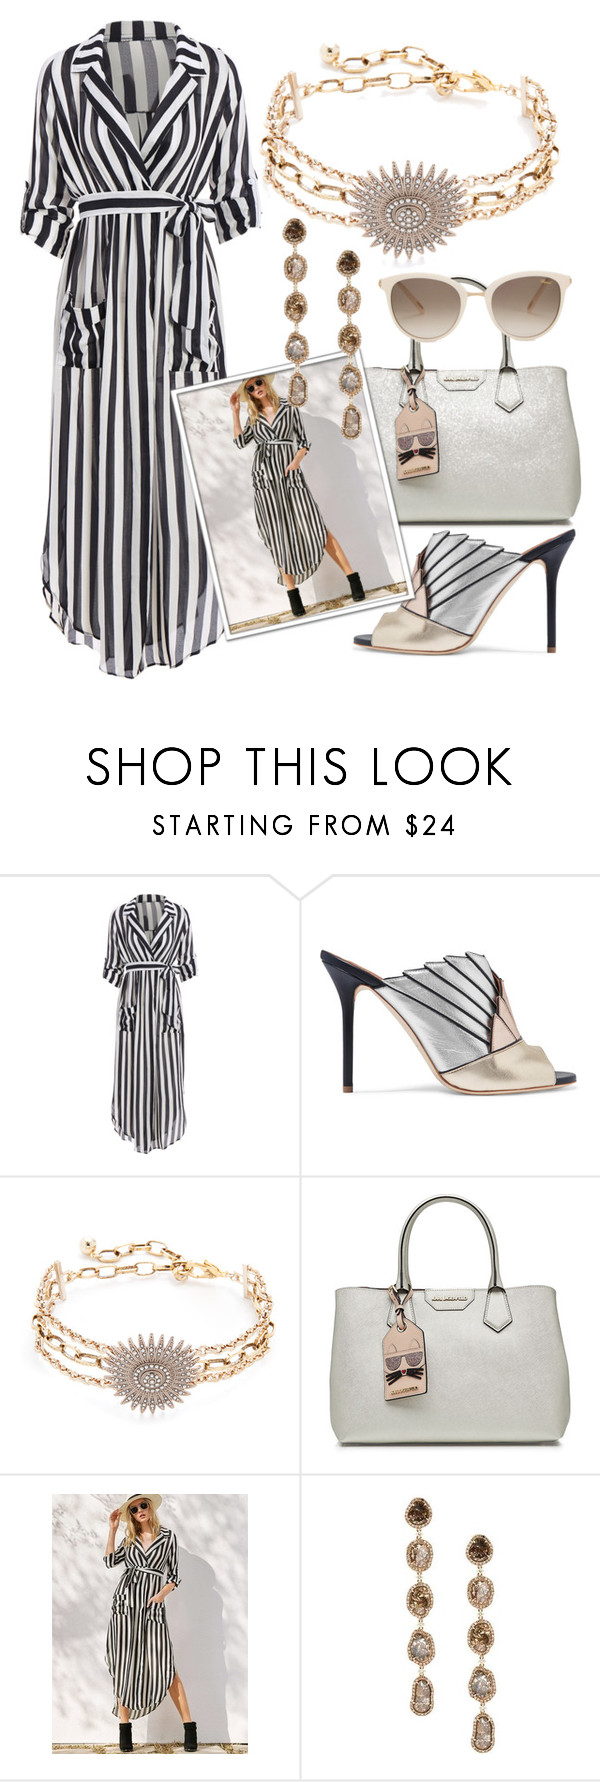 """""""Untitled #190"""" by glamheartcafe ❤ liked on Polyvore featuring Malone Souliers, Lulu Frost, Karl Lagerfeld, Saqqara and Chopard"""